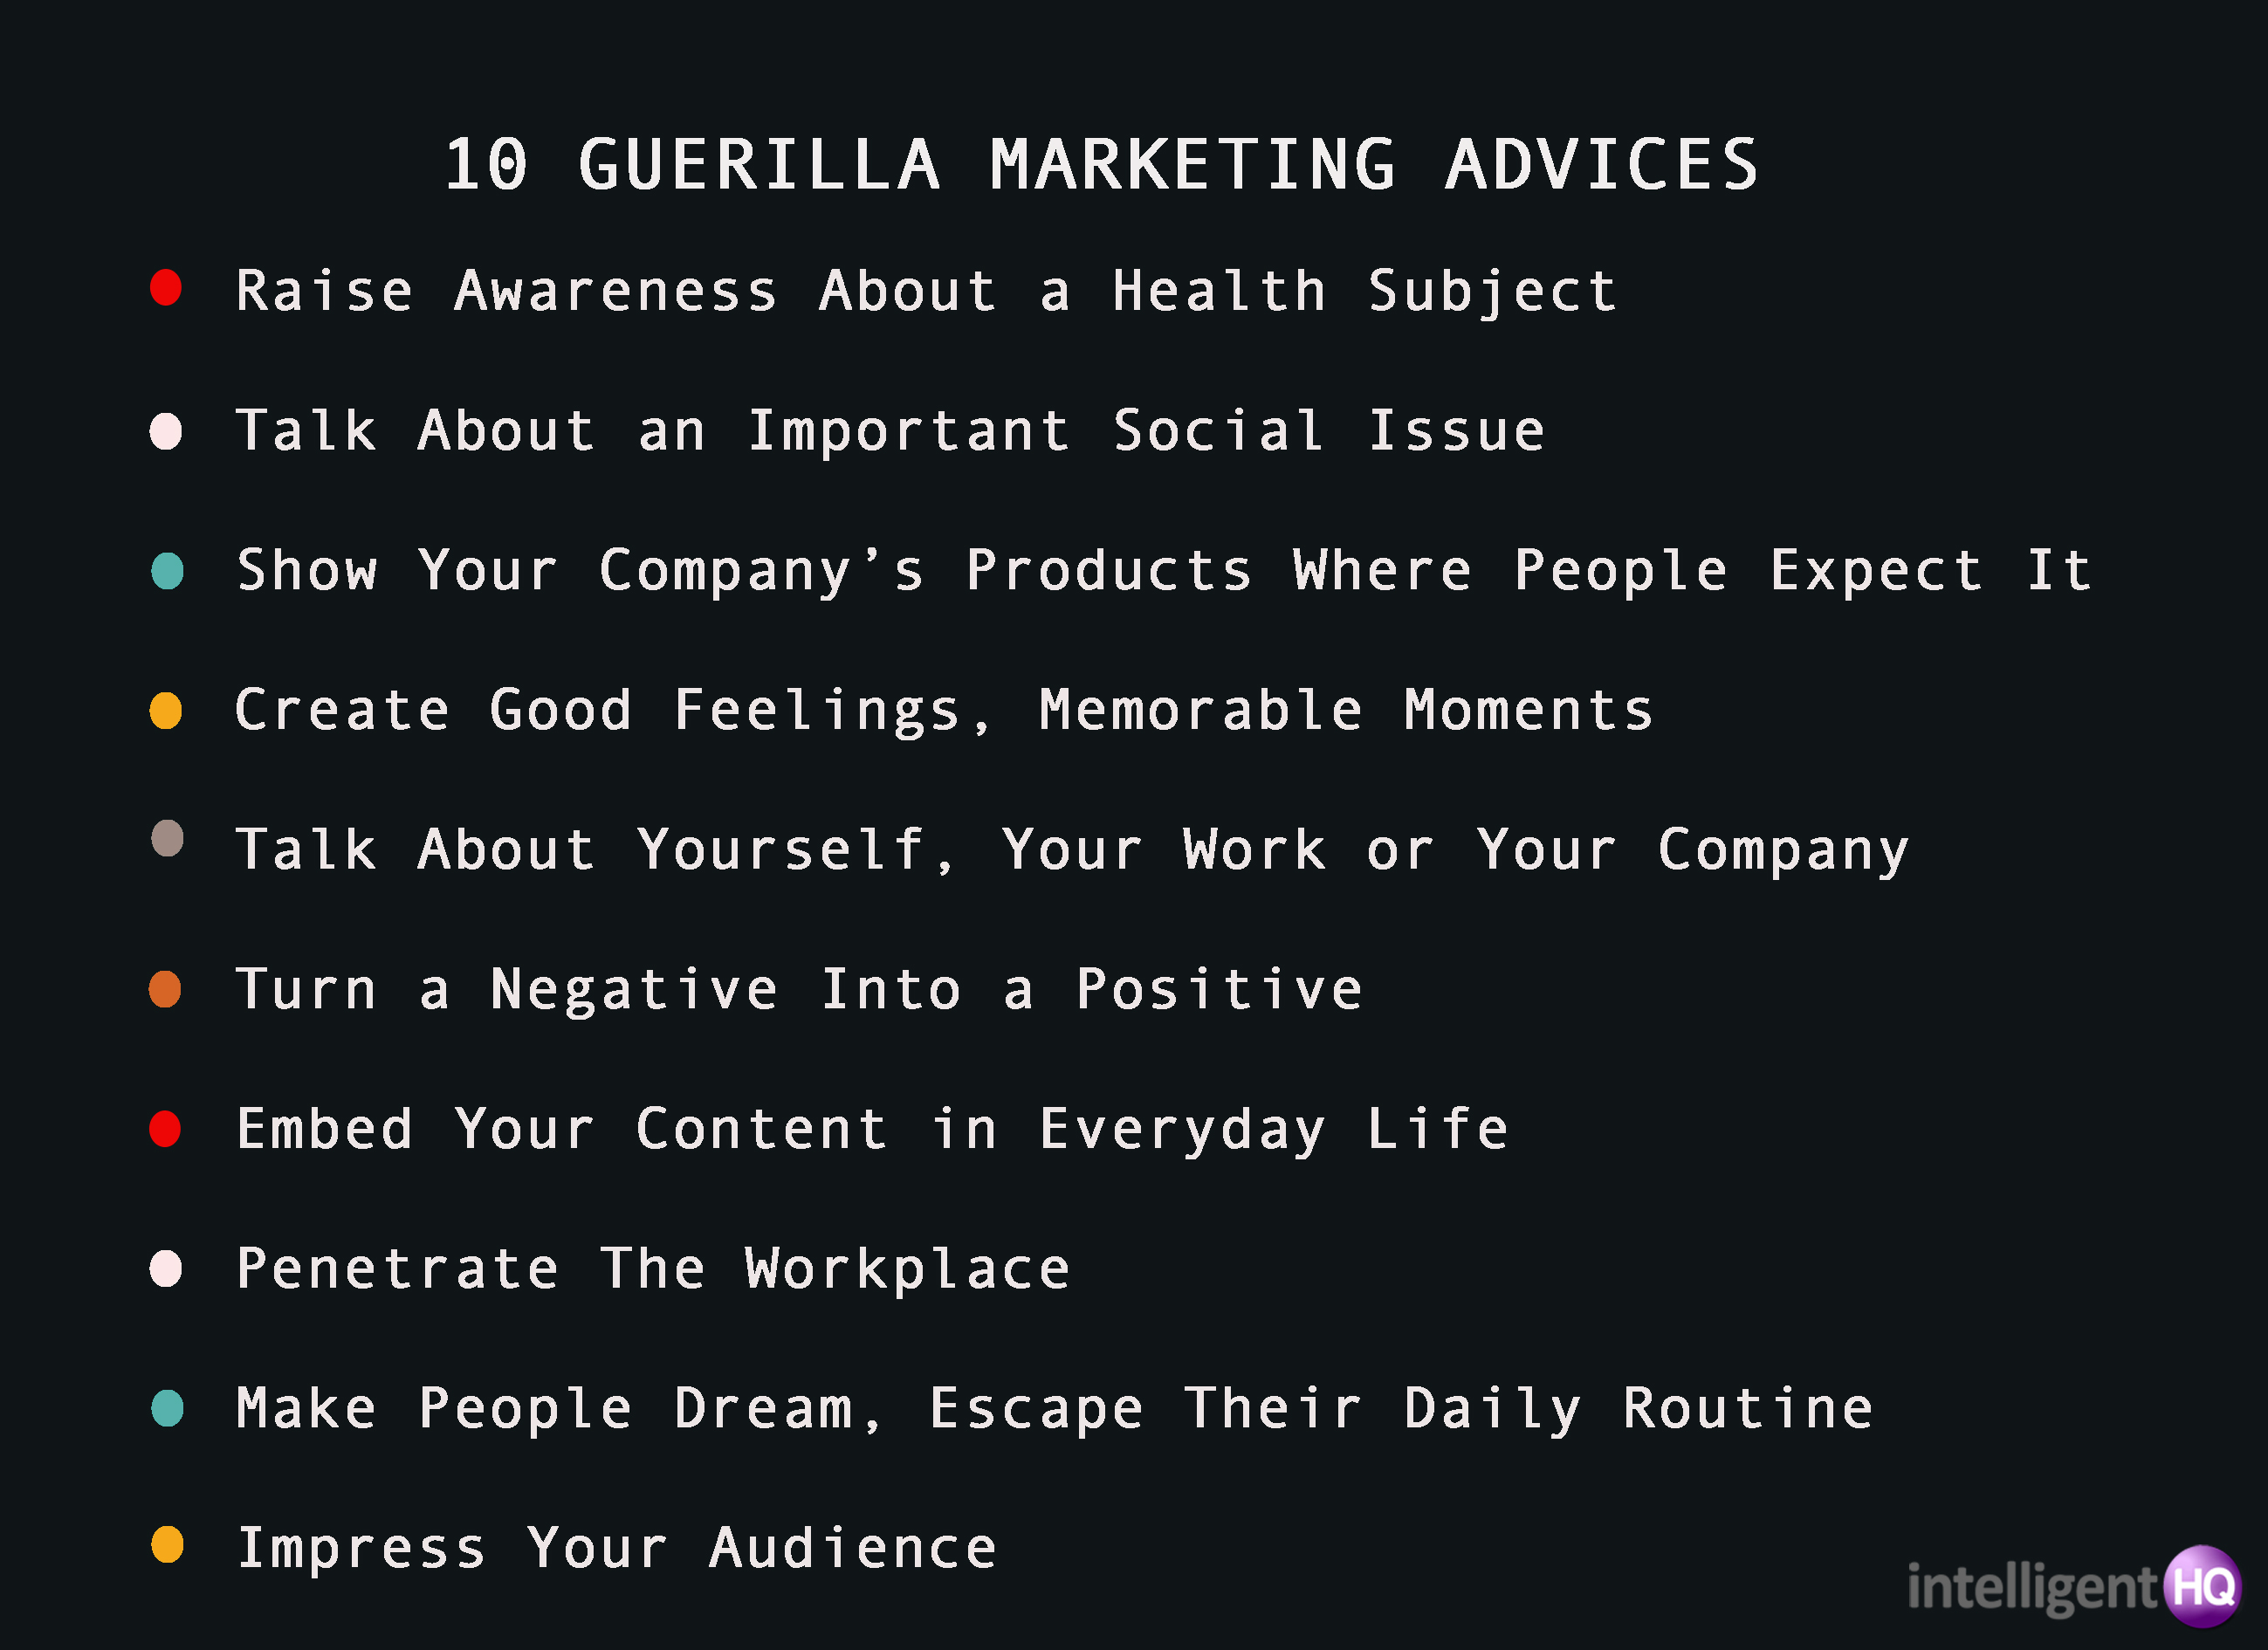 10 guerrilla marketing advices Intelligenthq